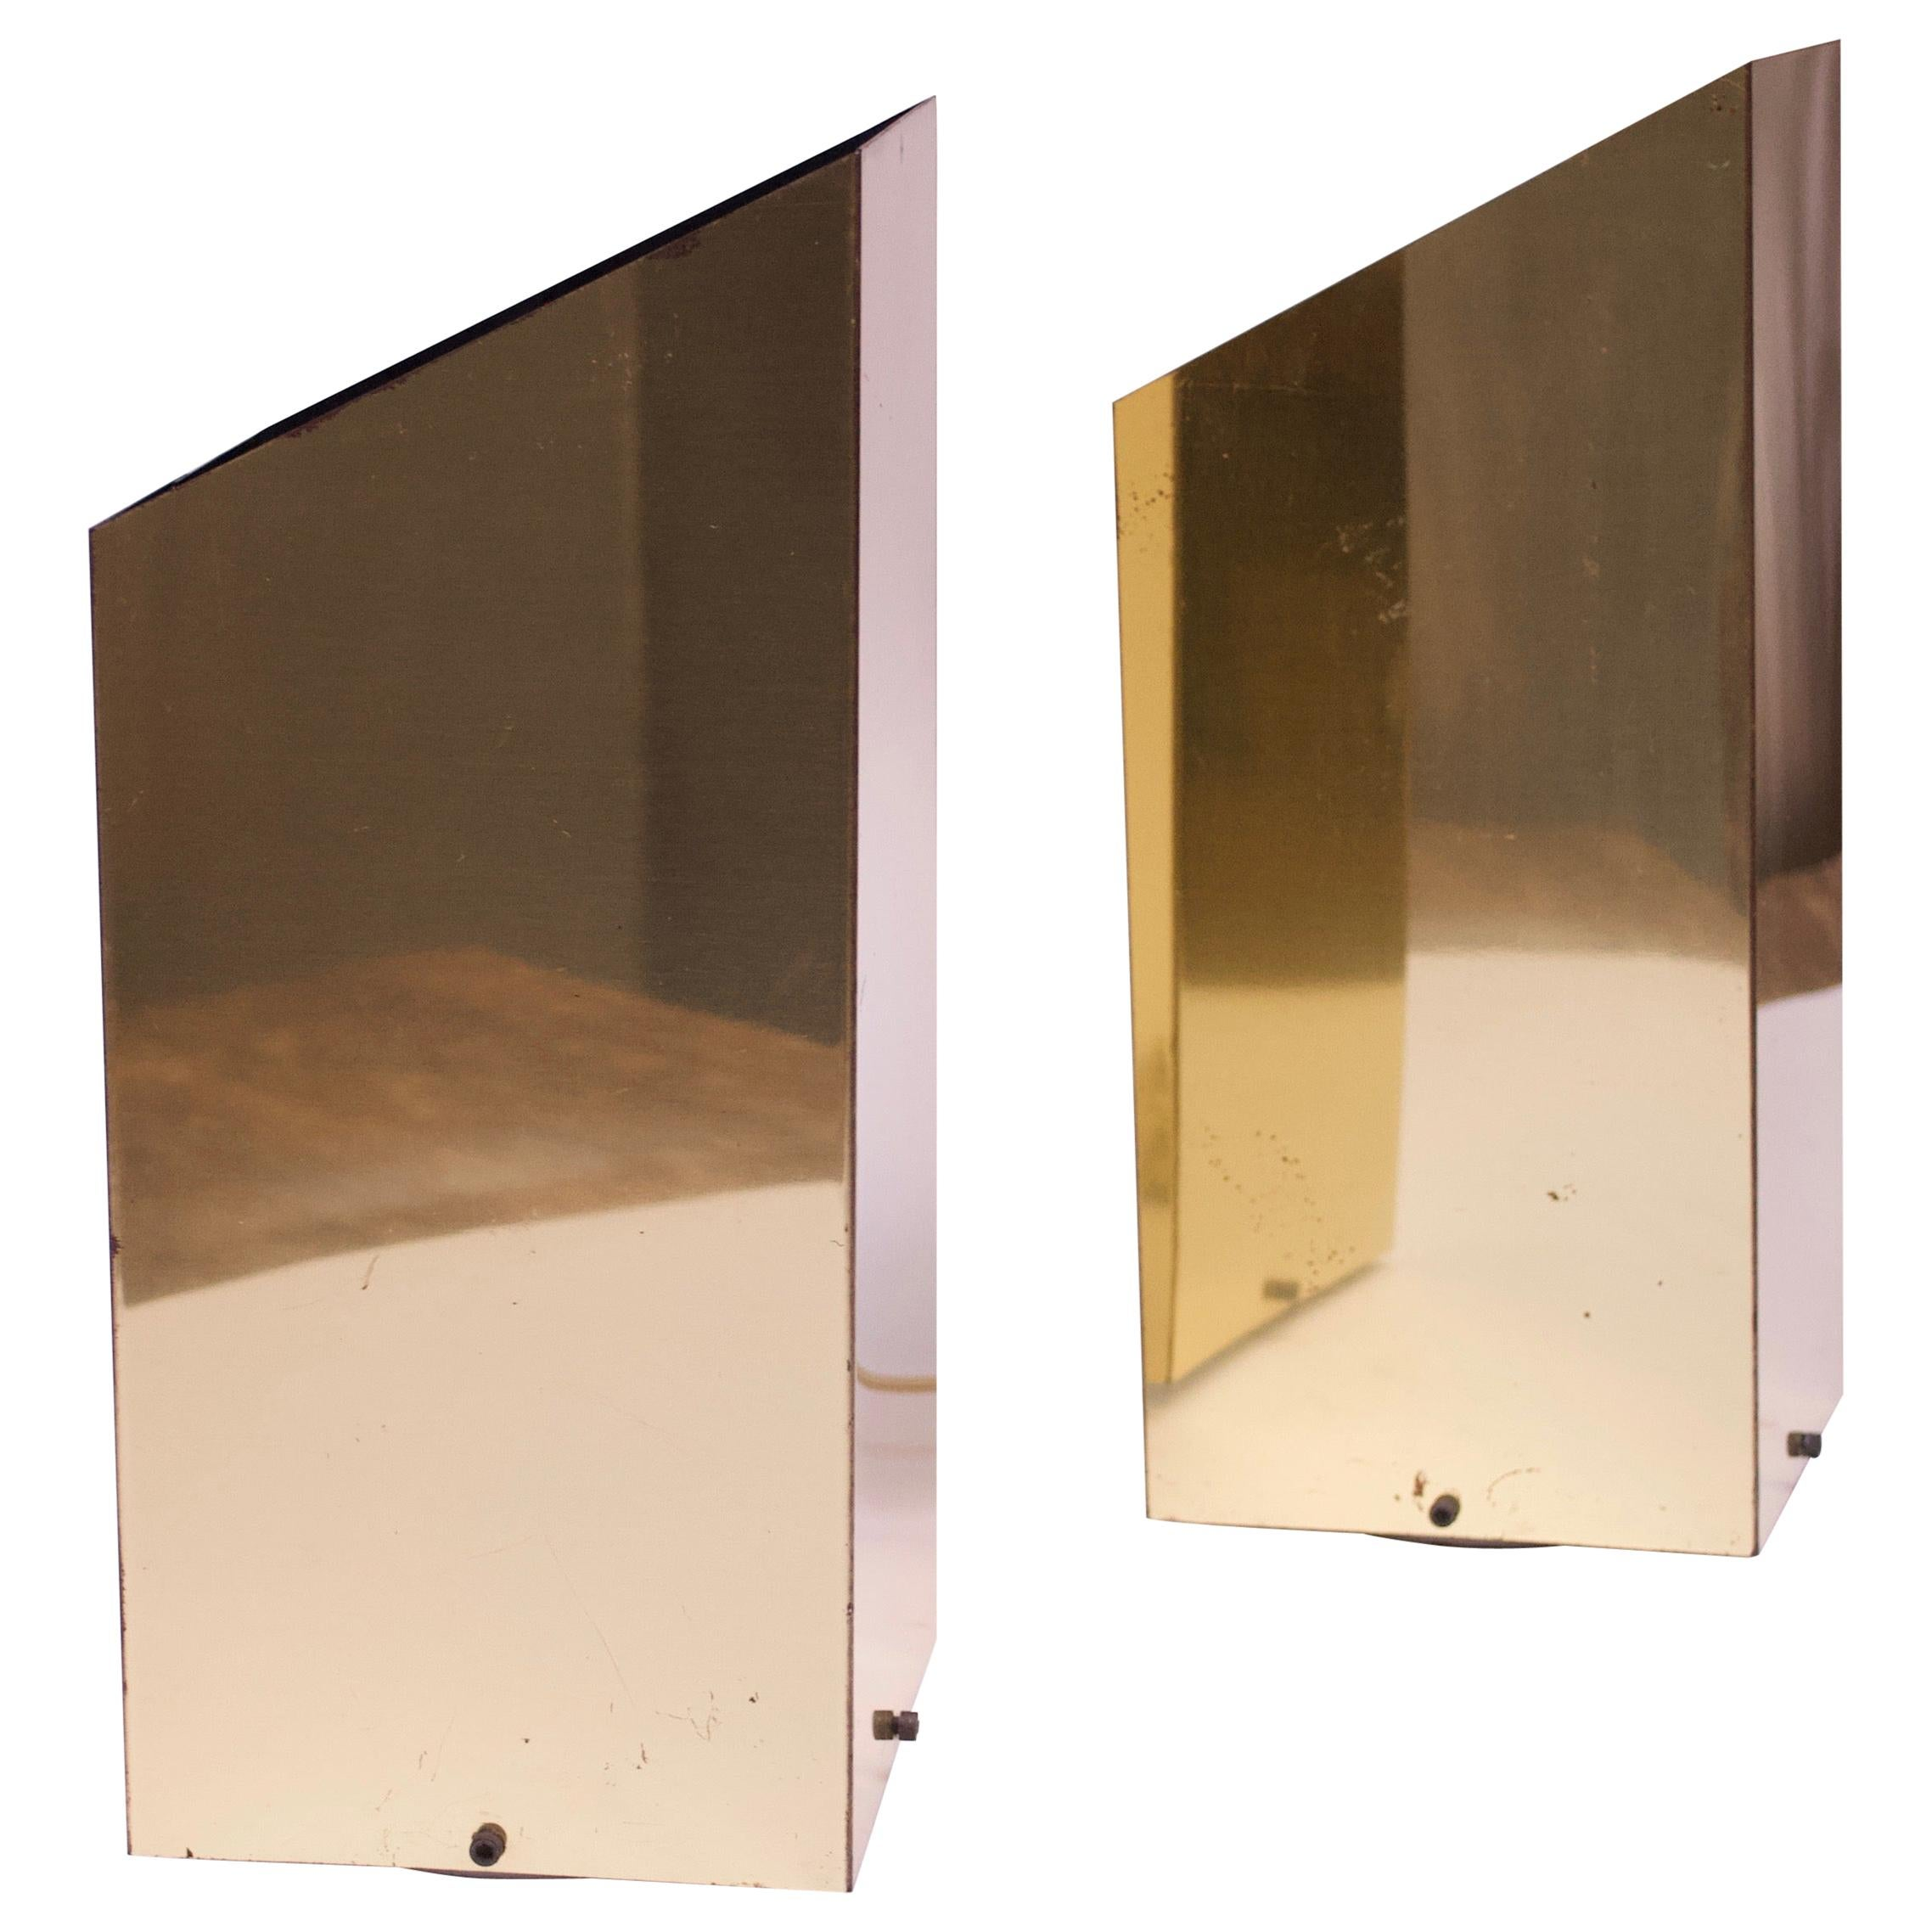 Pair of 1970s Trapezoidal Brass Table Lamps by George Kovacs